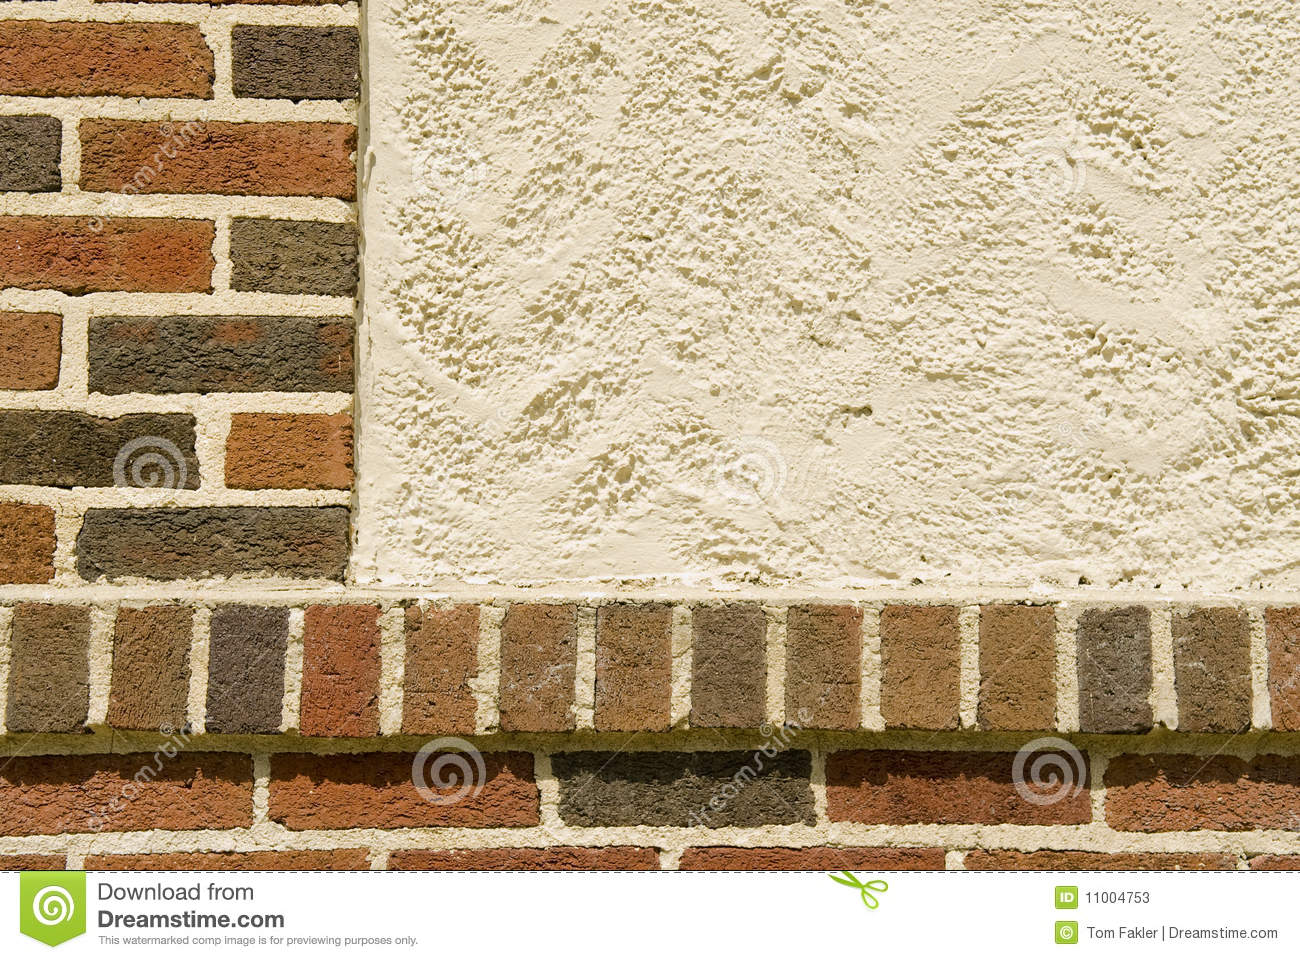 Brick and stucco facade stock photos image 11004753 for Stucco facade